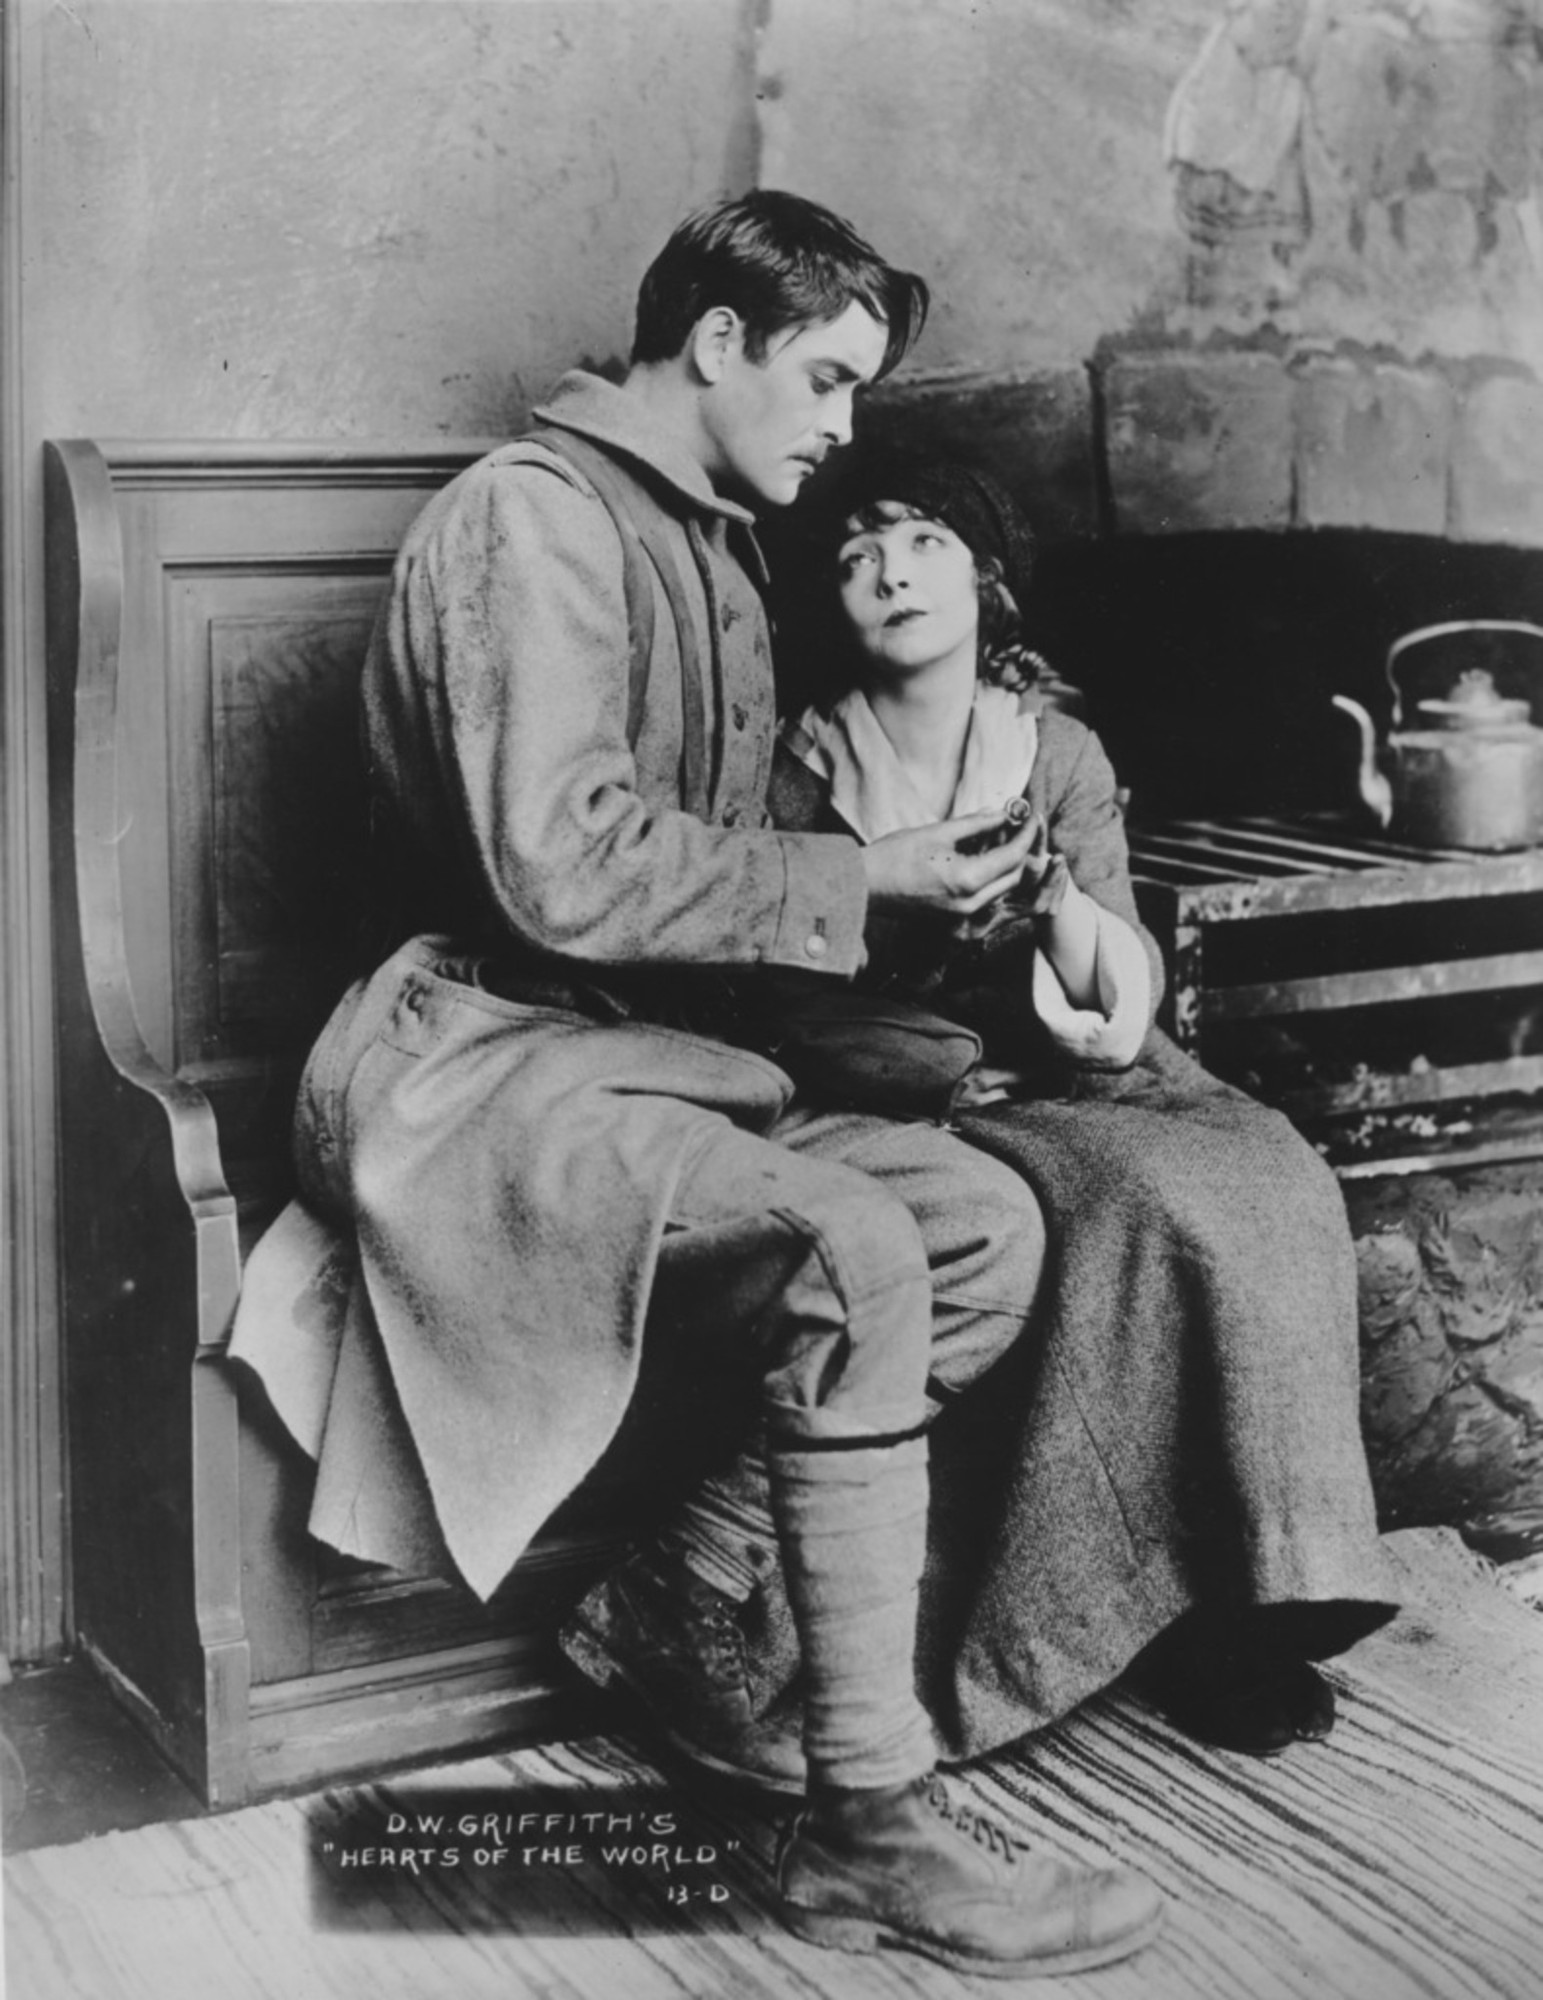 1918. USA. Directed by D. W. Griffith. With Lillian Gish, Robert Harron, Dorothy Gish, George Siegmann. Griffith's great epic focusing on the brutal treatment of the French following the German invasion—shown here in a newly restored, tinted print—was released in America eight months before the armistice. Silent, with musical accompaniment. Approx. 140 min.